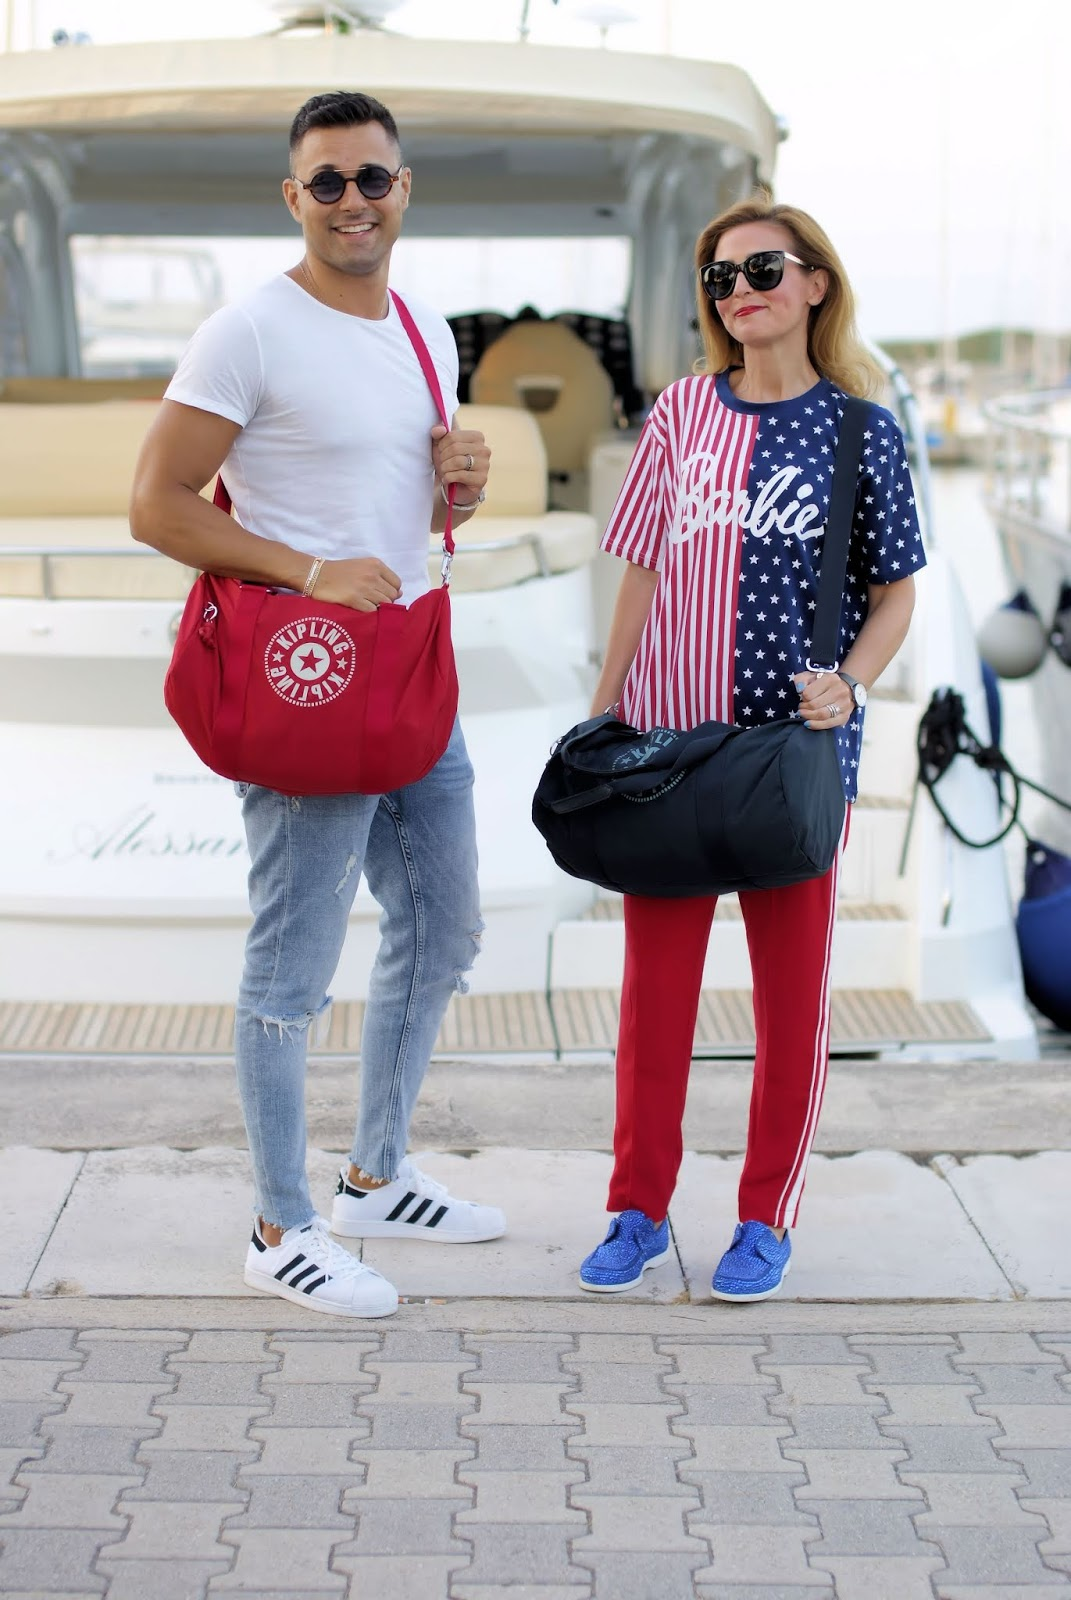 Onalo unisex duffle bag from Kipling New Classics collection on Fashion and Cookies fashion blog, fashion blogger style